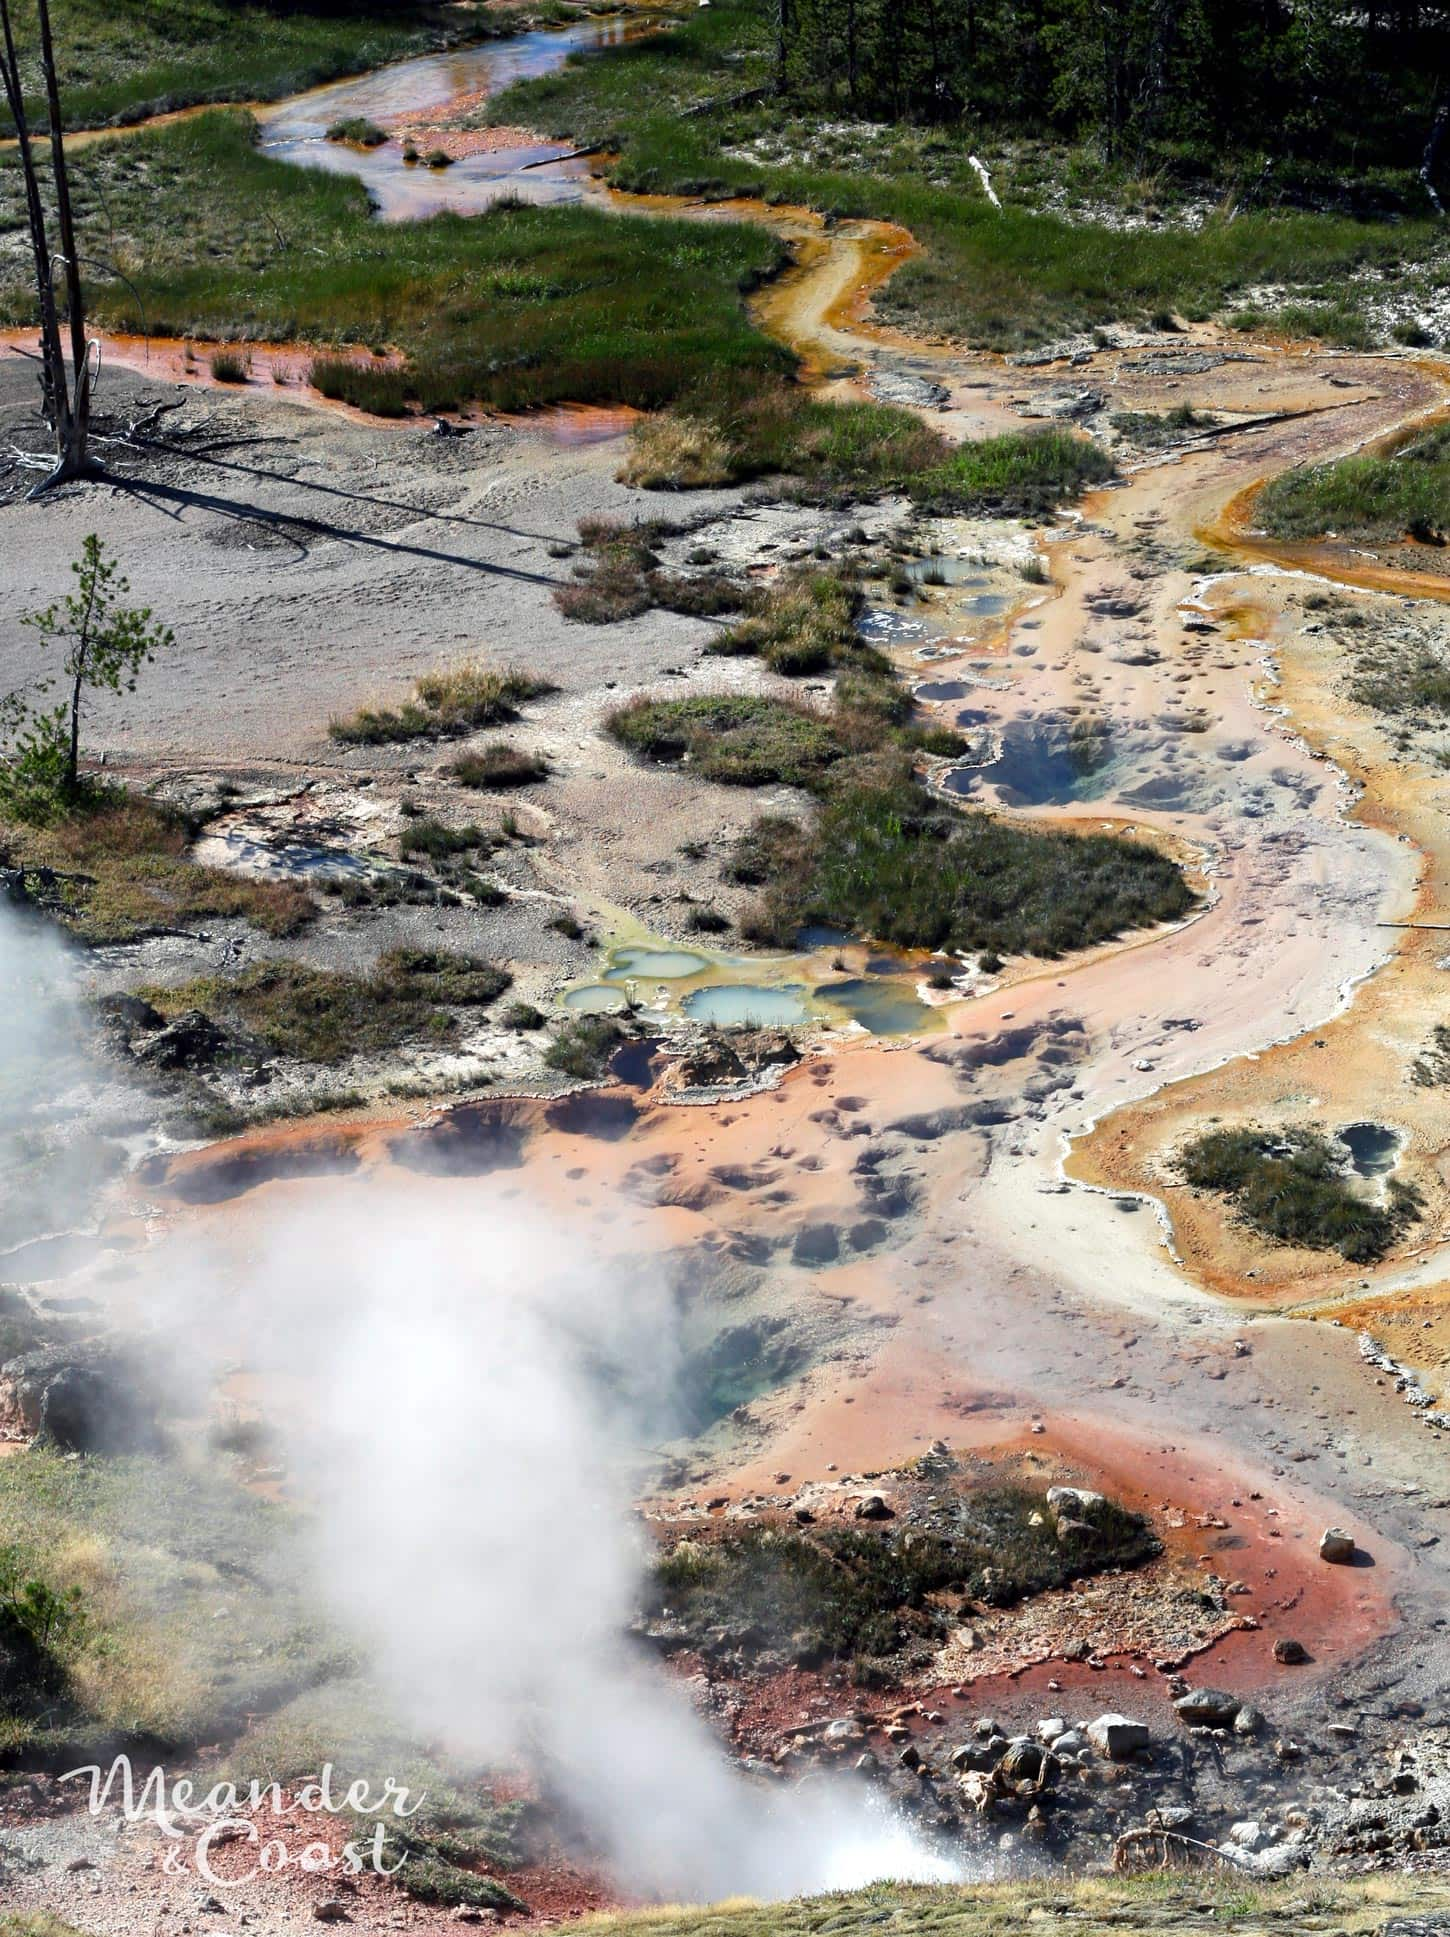 Bubbling, steaming geothermal attractions at Artist Paint Pots, Yellowstone National Park. | Best Yellowstone Attractions that aren't Old Faithful. Meander & Coast #travel #yellowstone #nationalpark #yellowstoneattractions #thingstosee #wyoming #artistpaintpots